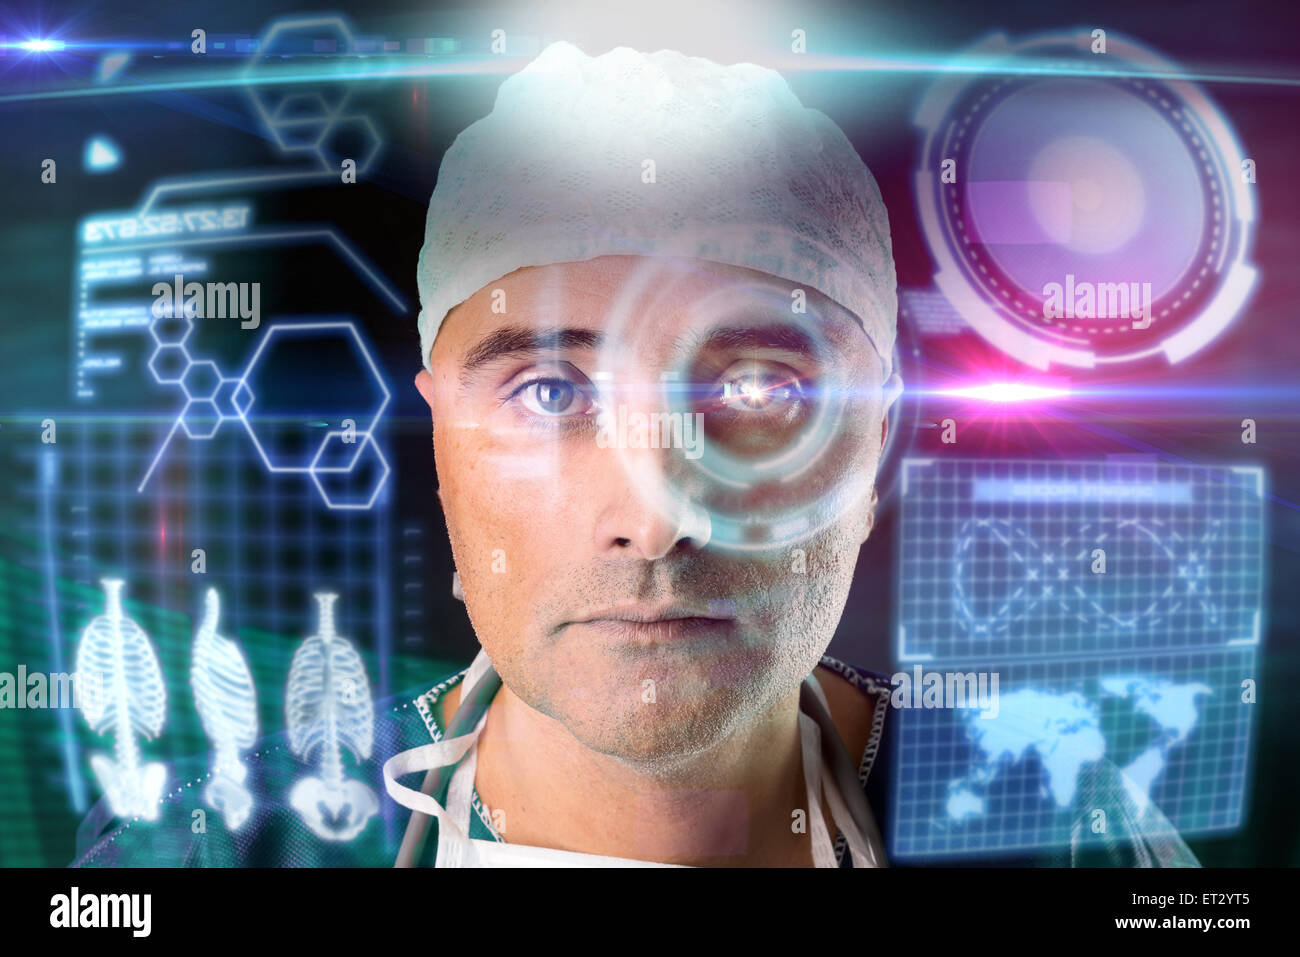 Doctor in uniform with digital  screens and heads-up display - Stock Image